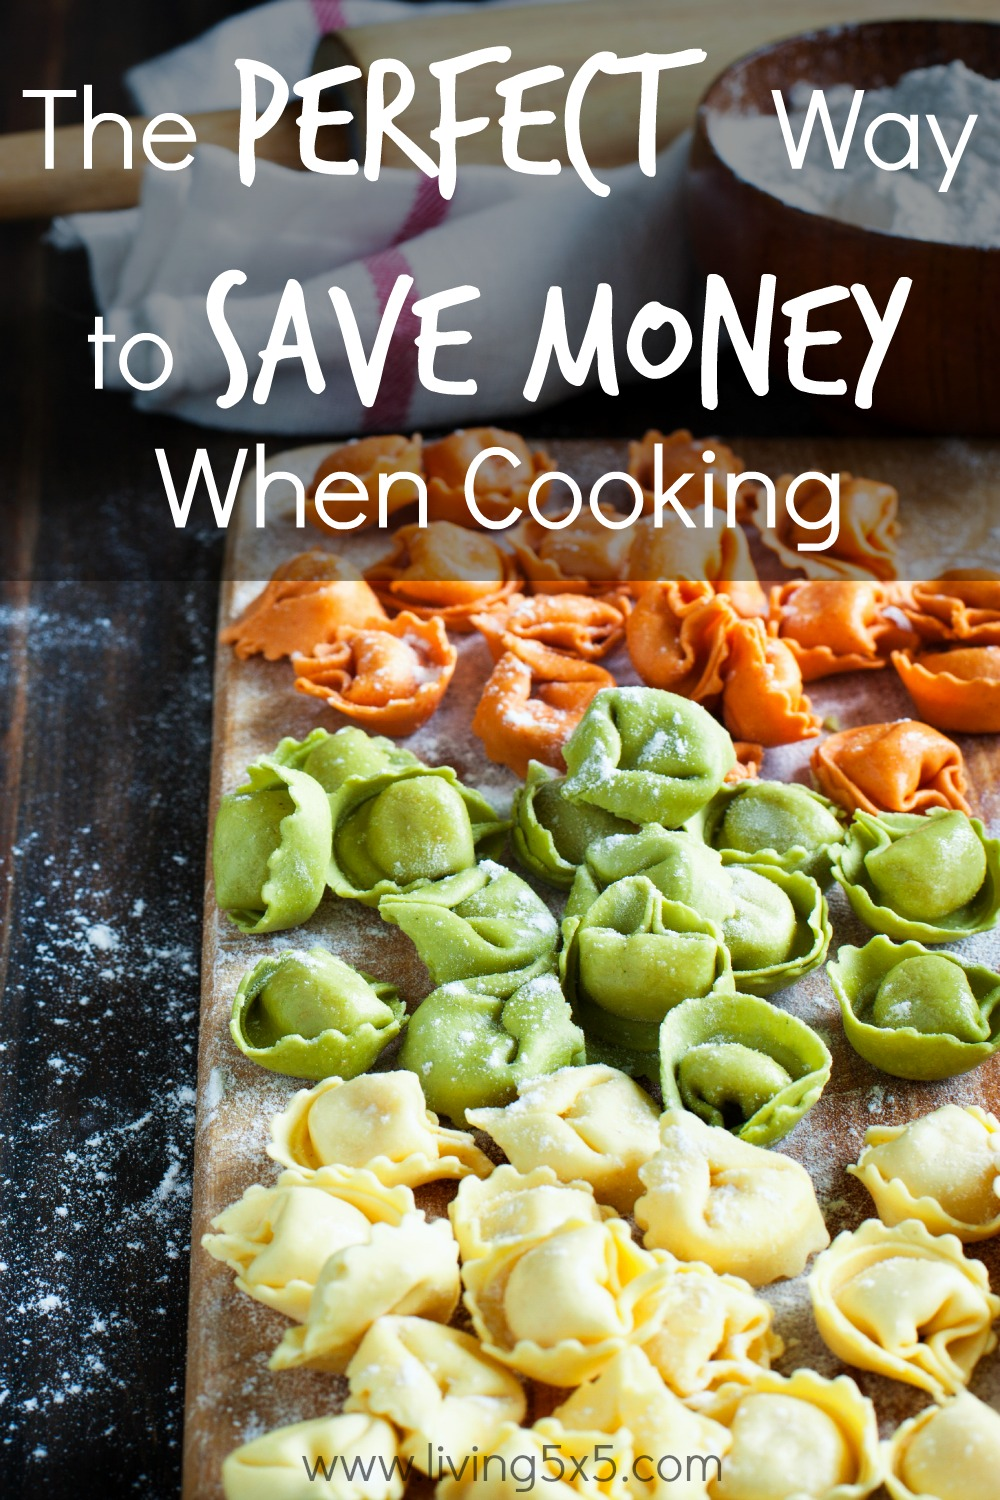 Learn more about Batch Cooking to Save Money and time when life is just too hectic.